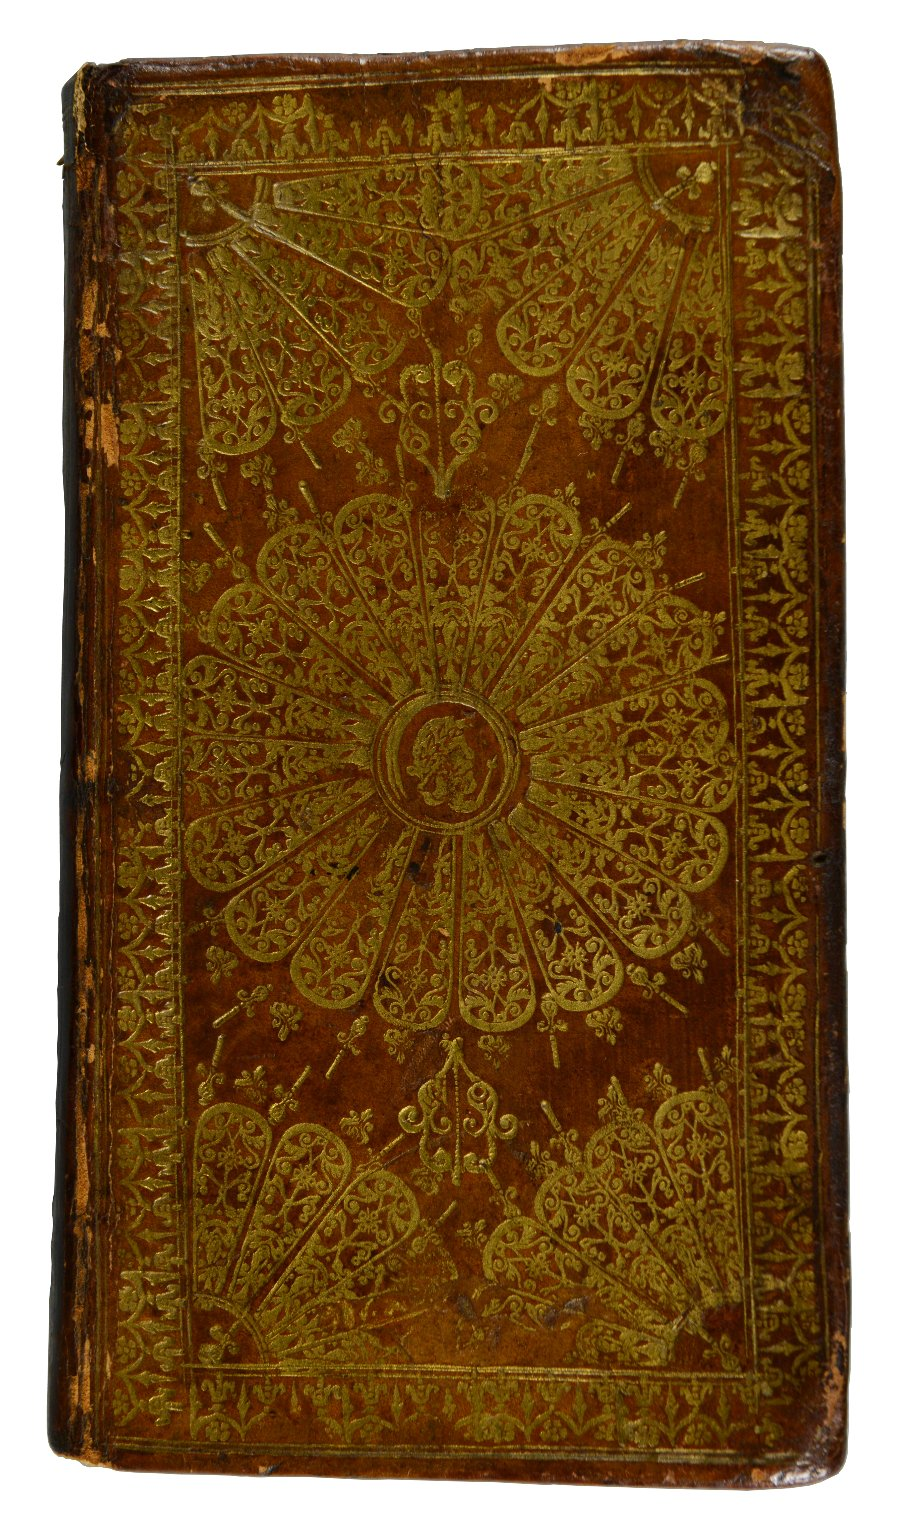 Front cover, 267- 907.1q.